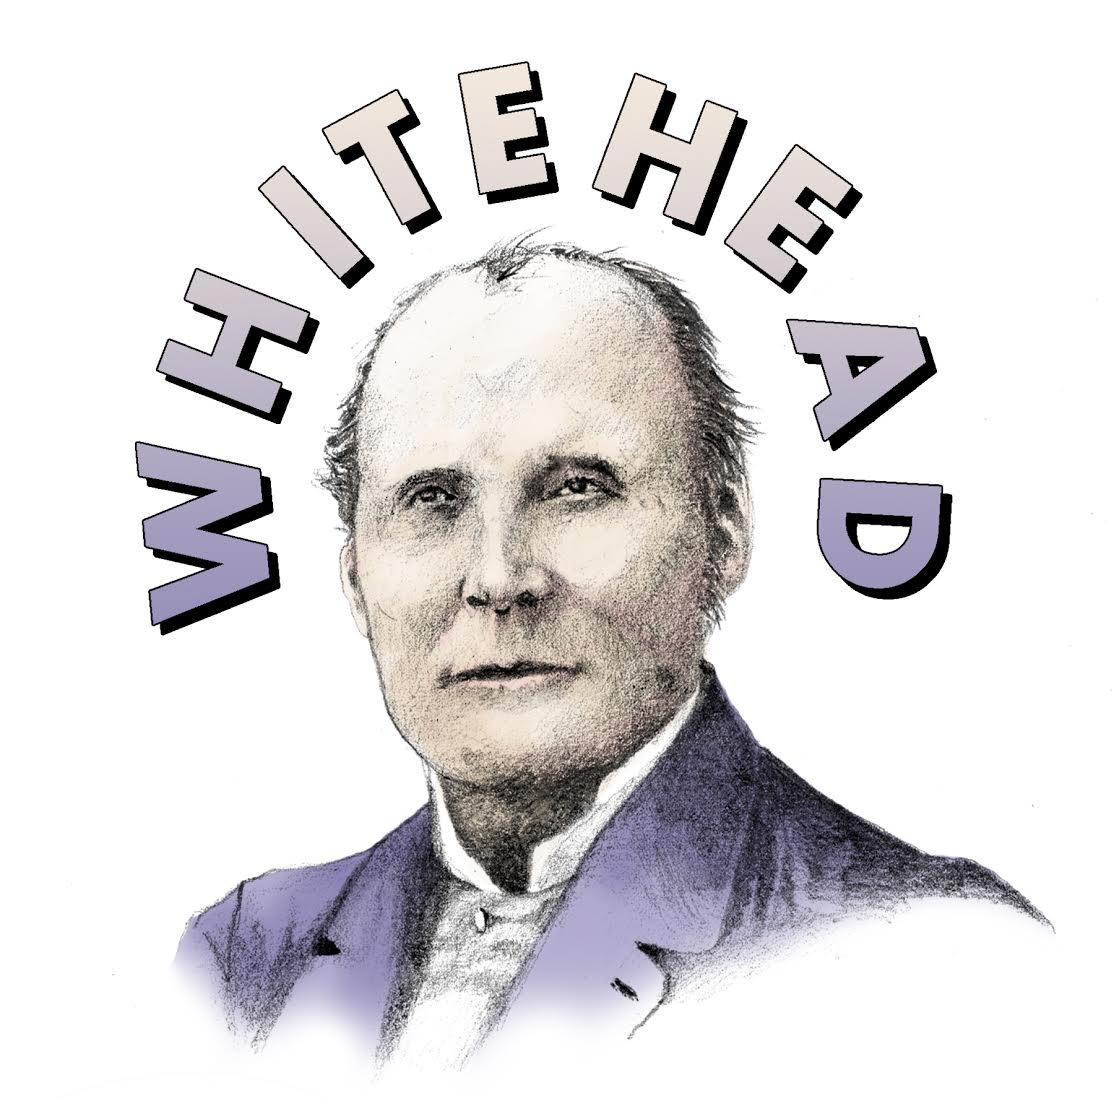 alfred north whitehead and john dewey Alfred north whitehead, om frs (15 february 1861 - 30 december 1947) was an english mathematician and philosopher he is best known as the defining figure of the philosophical school known as process philosophy, which today has found application to a wide variety of disciplines.